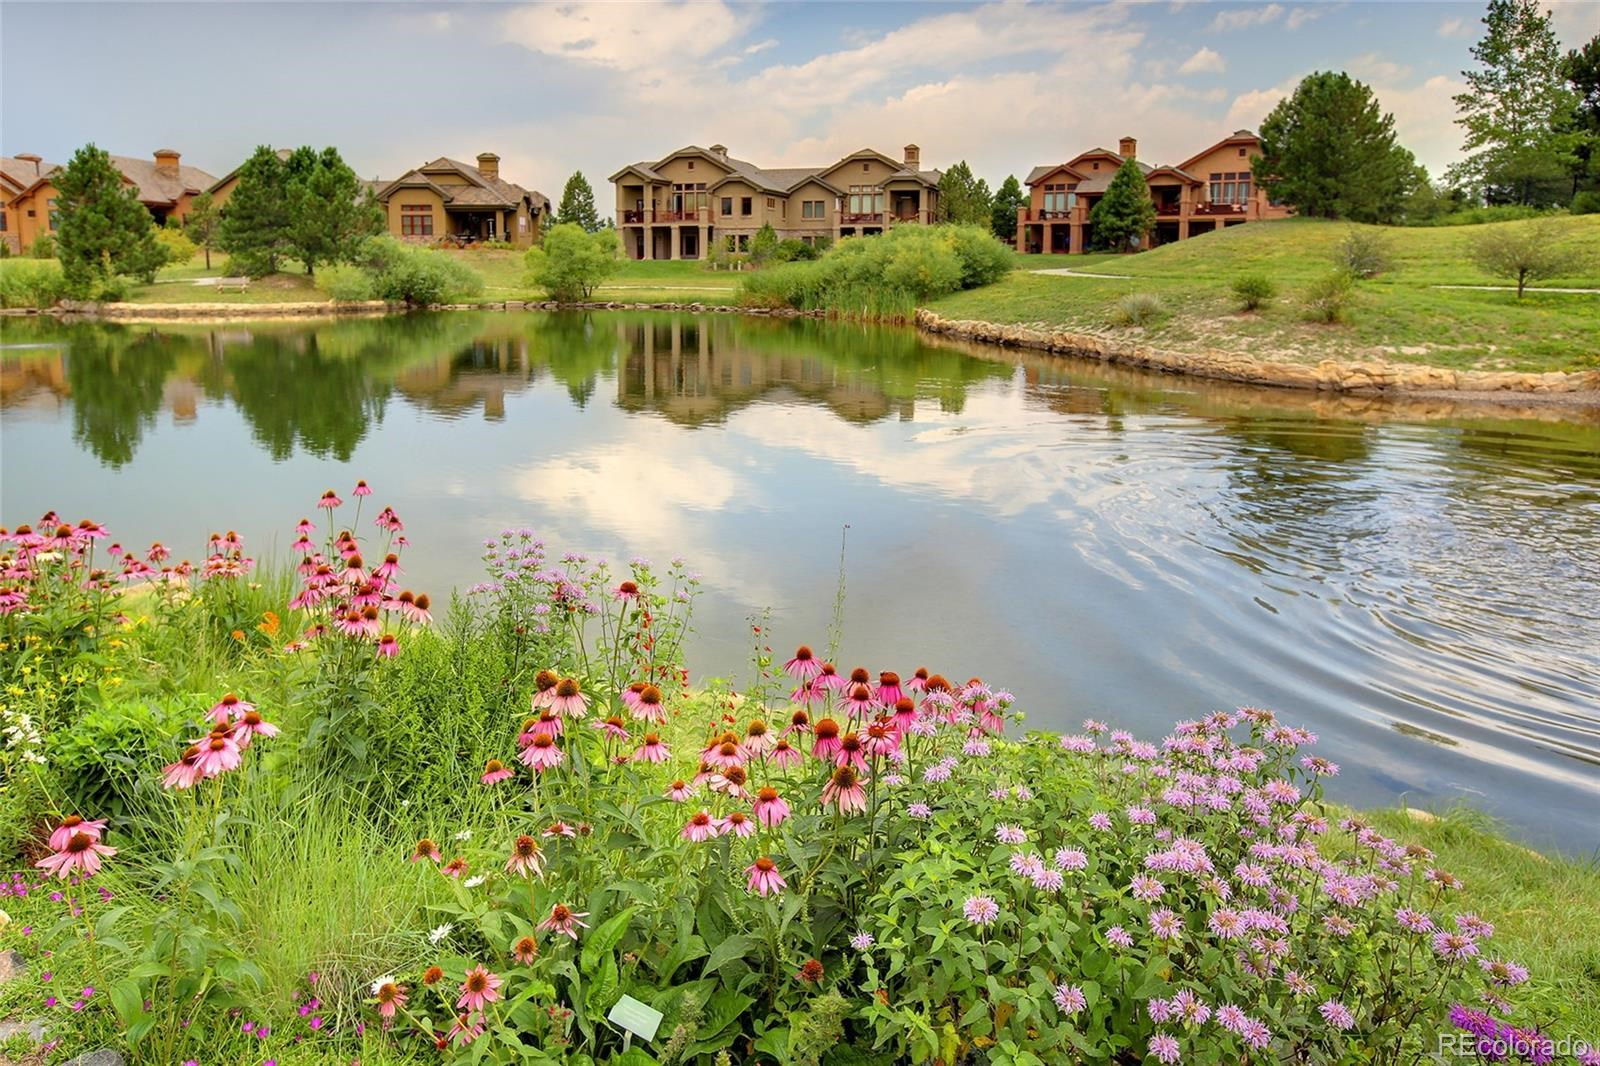 MLS# 7138743 - 21 - 965 Country Club Parkway, Castle Rock, CO 80108